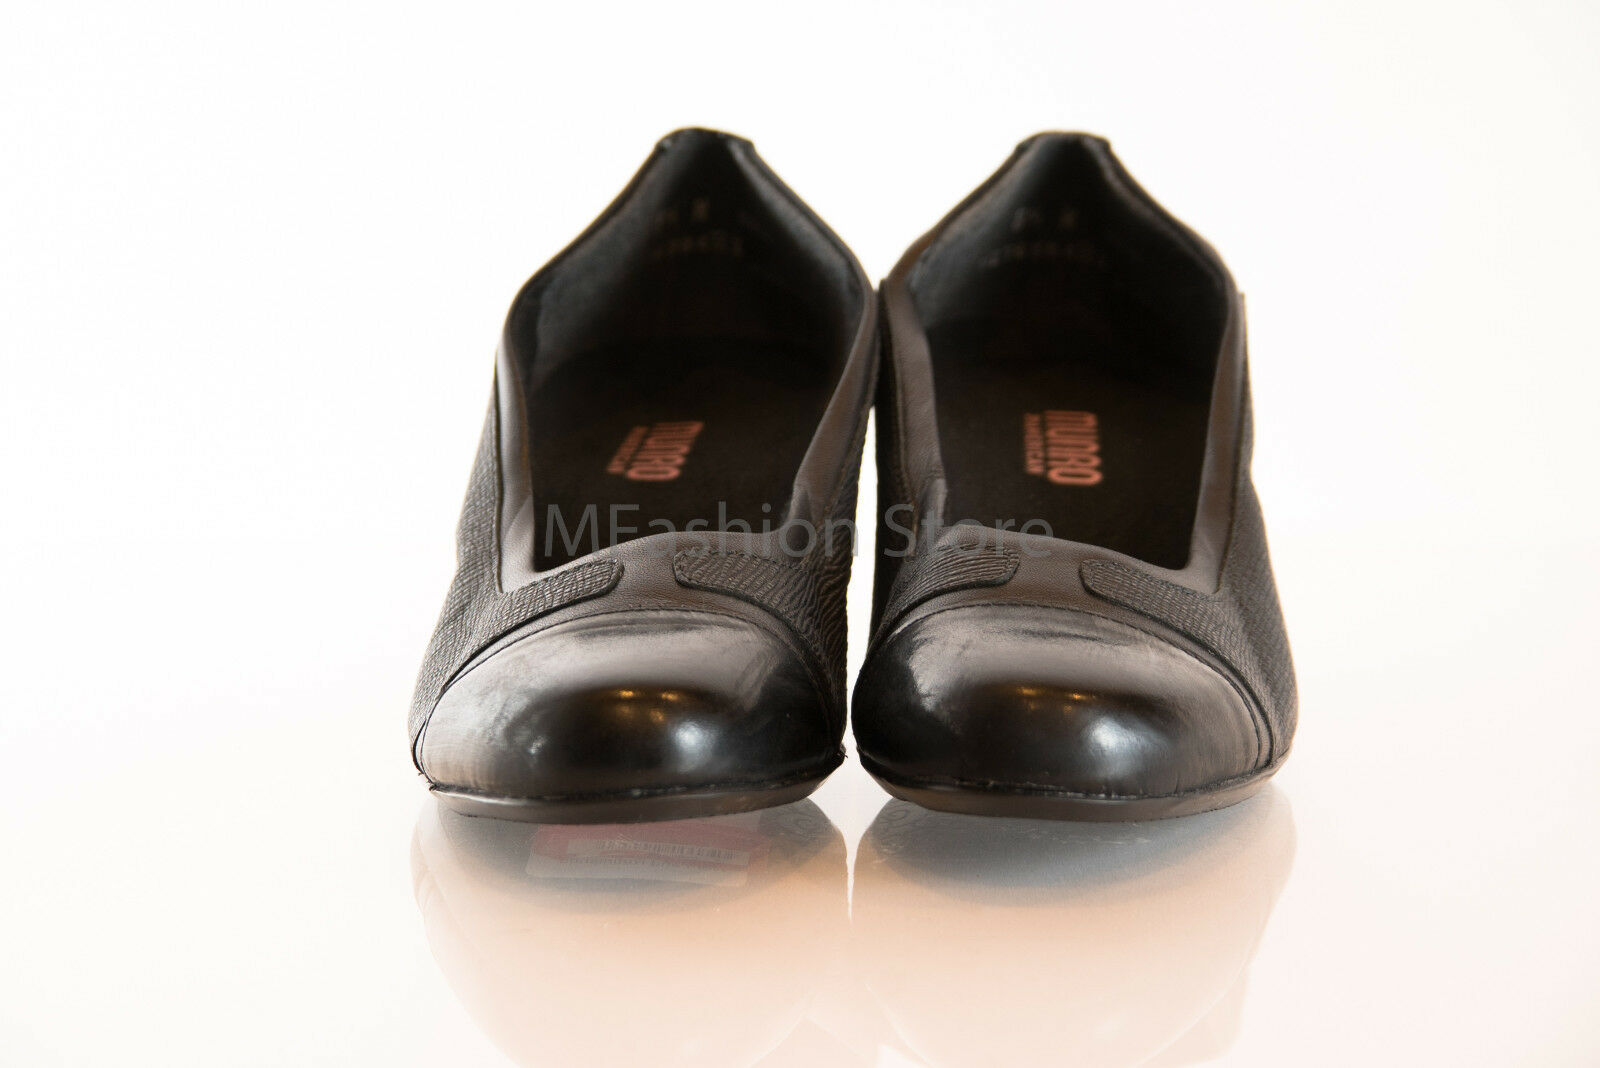 MUNRO nero nero nero Leather Heels   Slip On donna scarpe Dimensione US 7W & 8.5N New e31d11